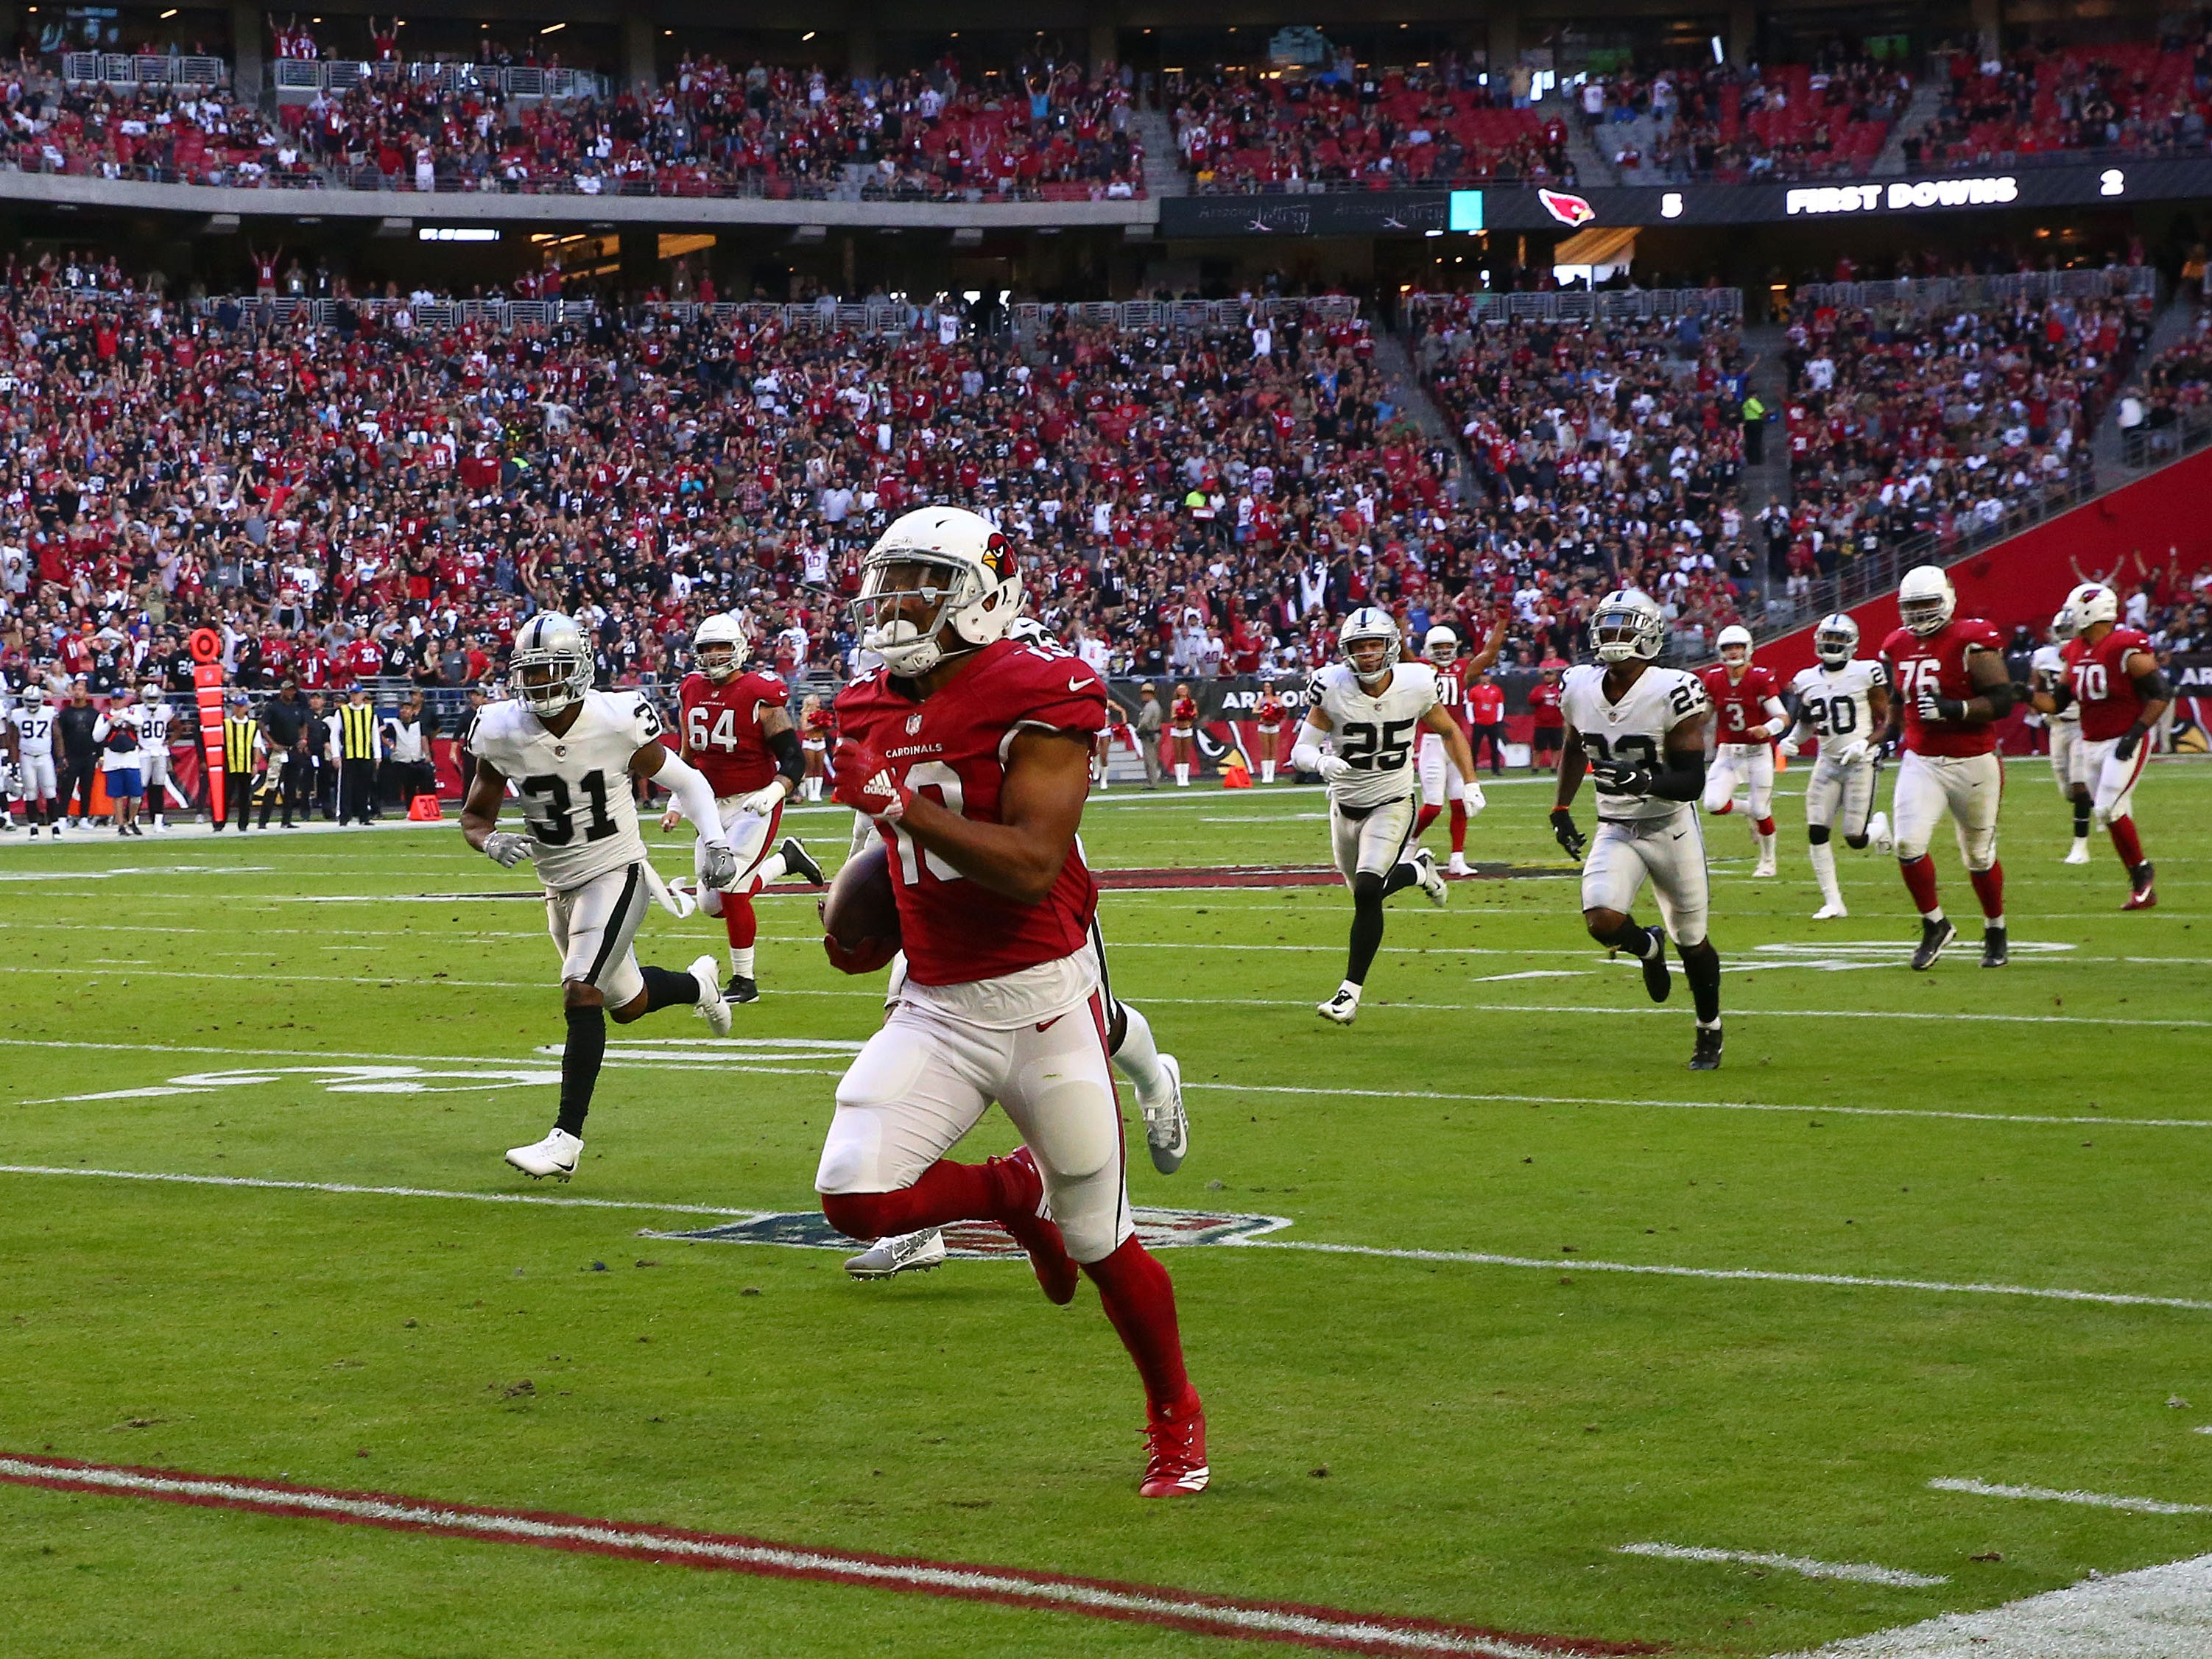 Arizona Cardinals wide receiver Christian Kirk makes a touchdown catch against the Oakland Raiders in the first half during a game Nov. 18 at State Farm Stadium.